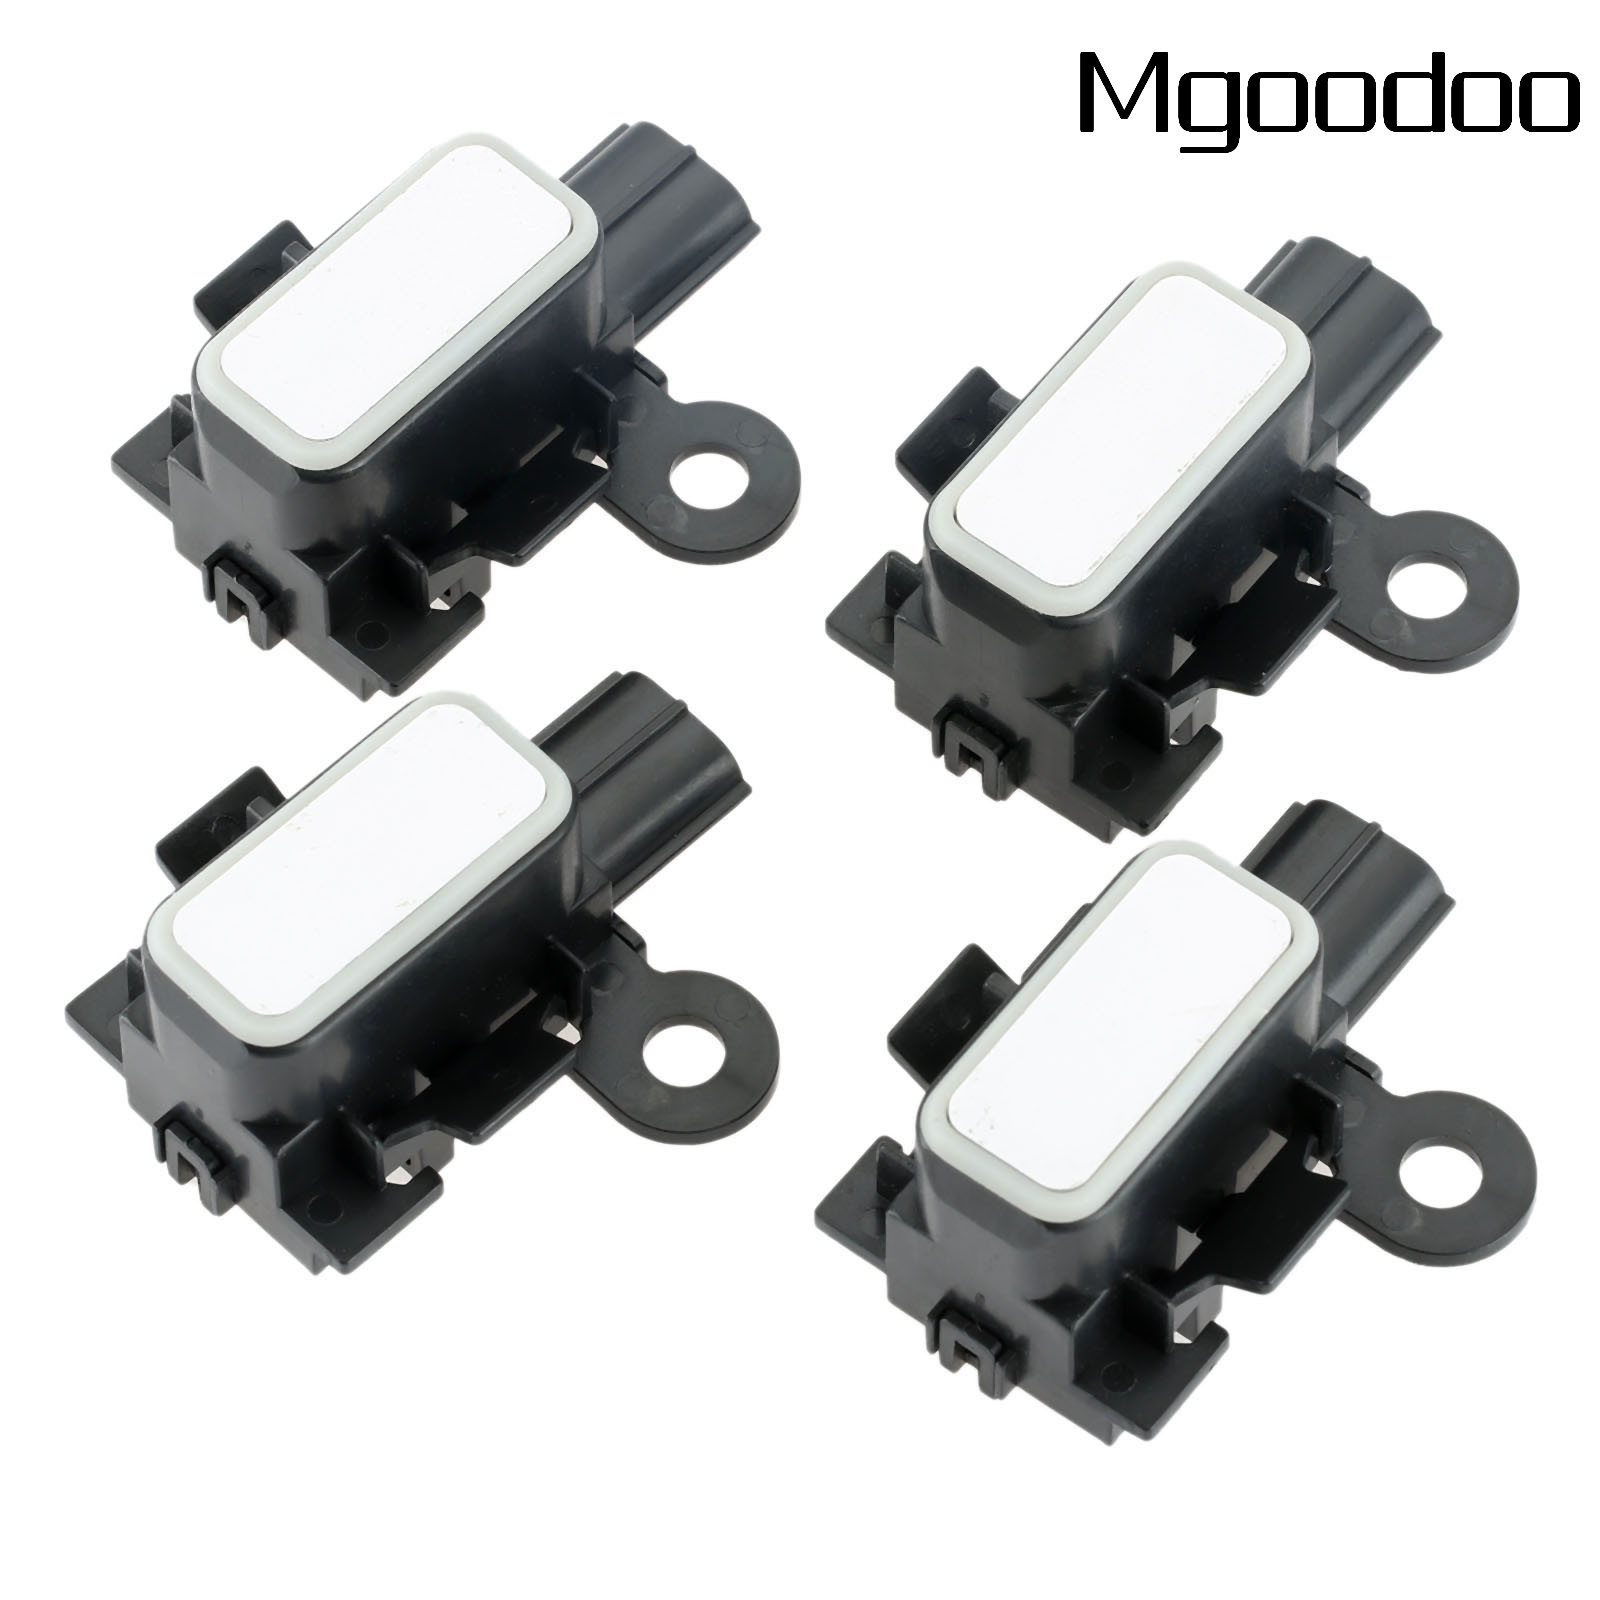 4x PDC Ultrasonic Parking Radar Sensor For Lexus GS300 GS350 GS430 GS450h GS460 89341-44150-B2 89341-44150 Parktronic Sensor NEW new 4pcs original parking sensor brand 25994 cm10d ultrasonic pdc sensor for nissan infiniti g20 fx50 25994 cm13e